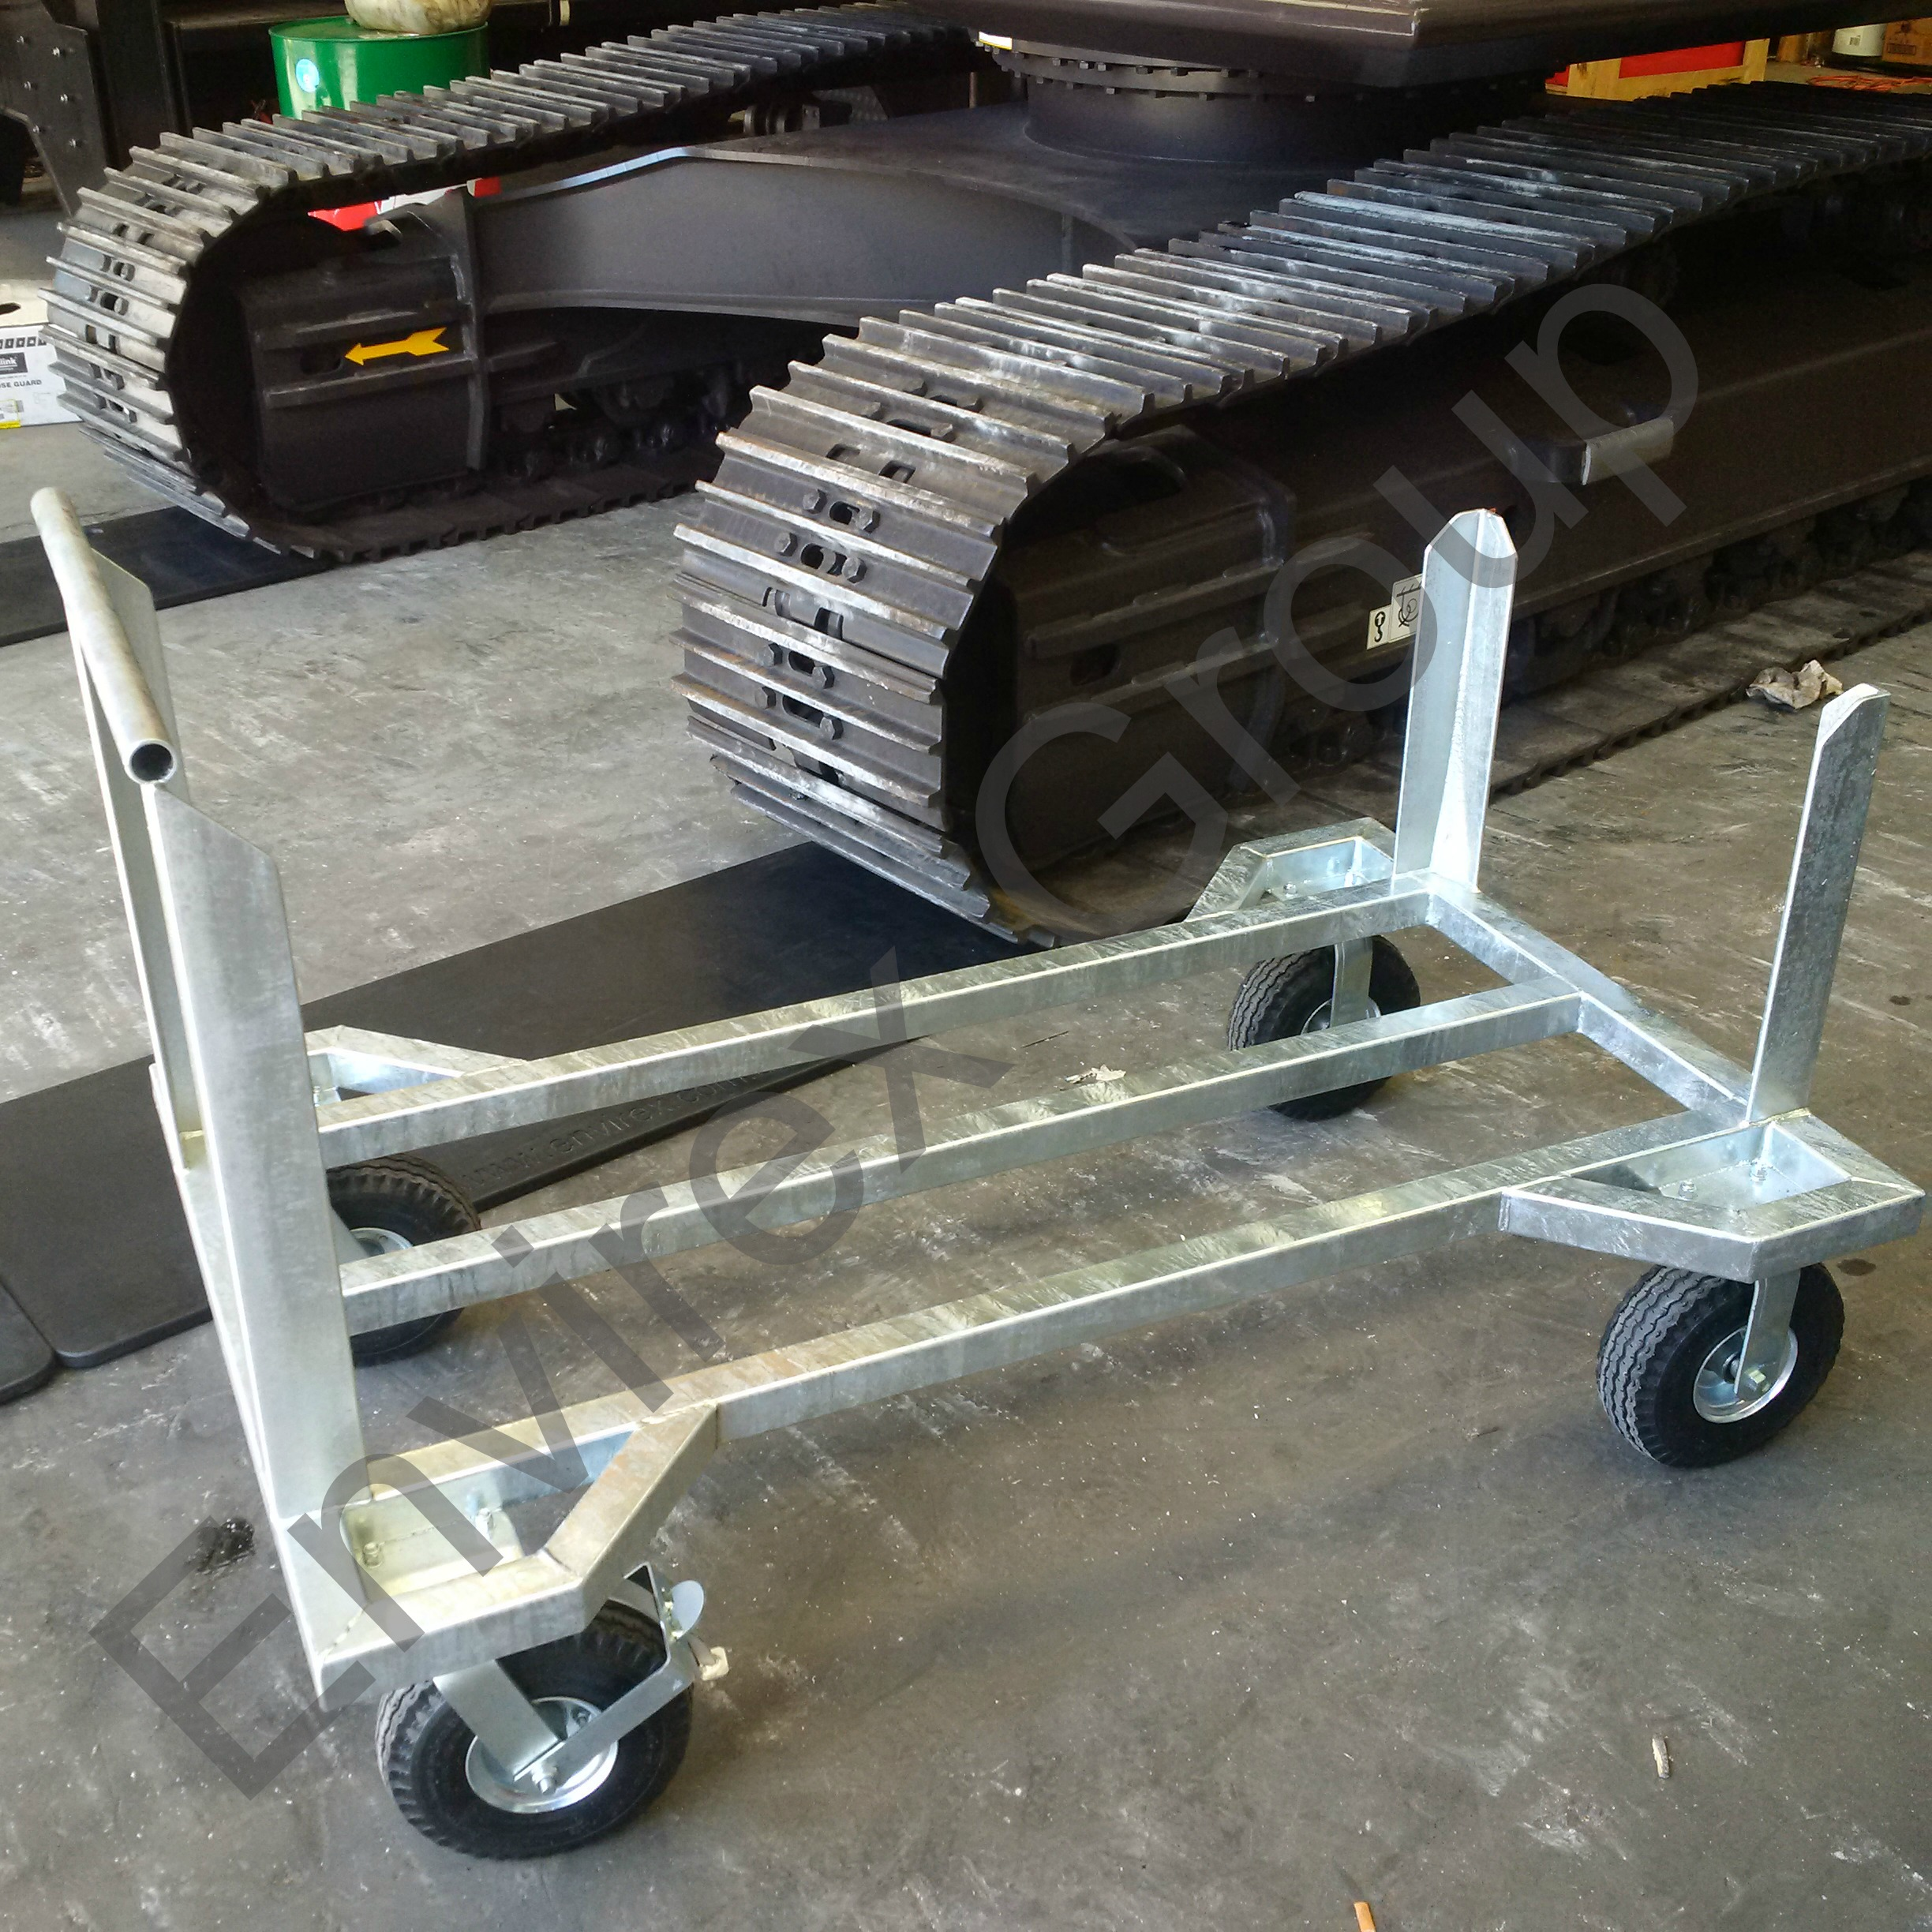 MEGATRAX Workshop Floor Protection Mats Storage Trolley